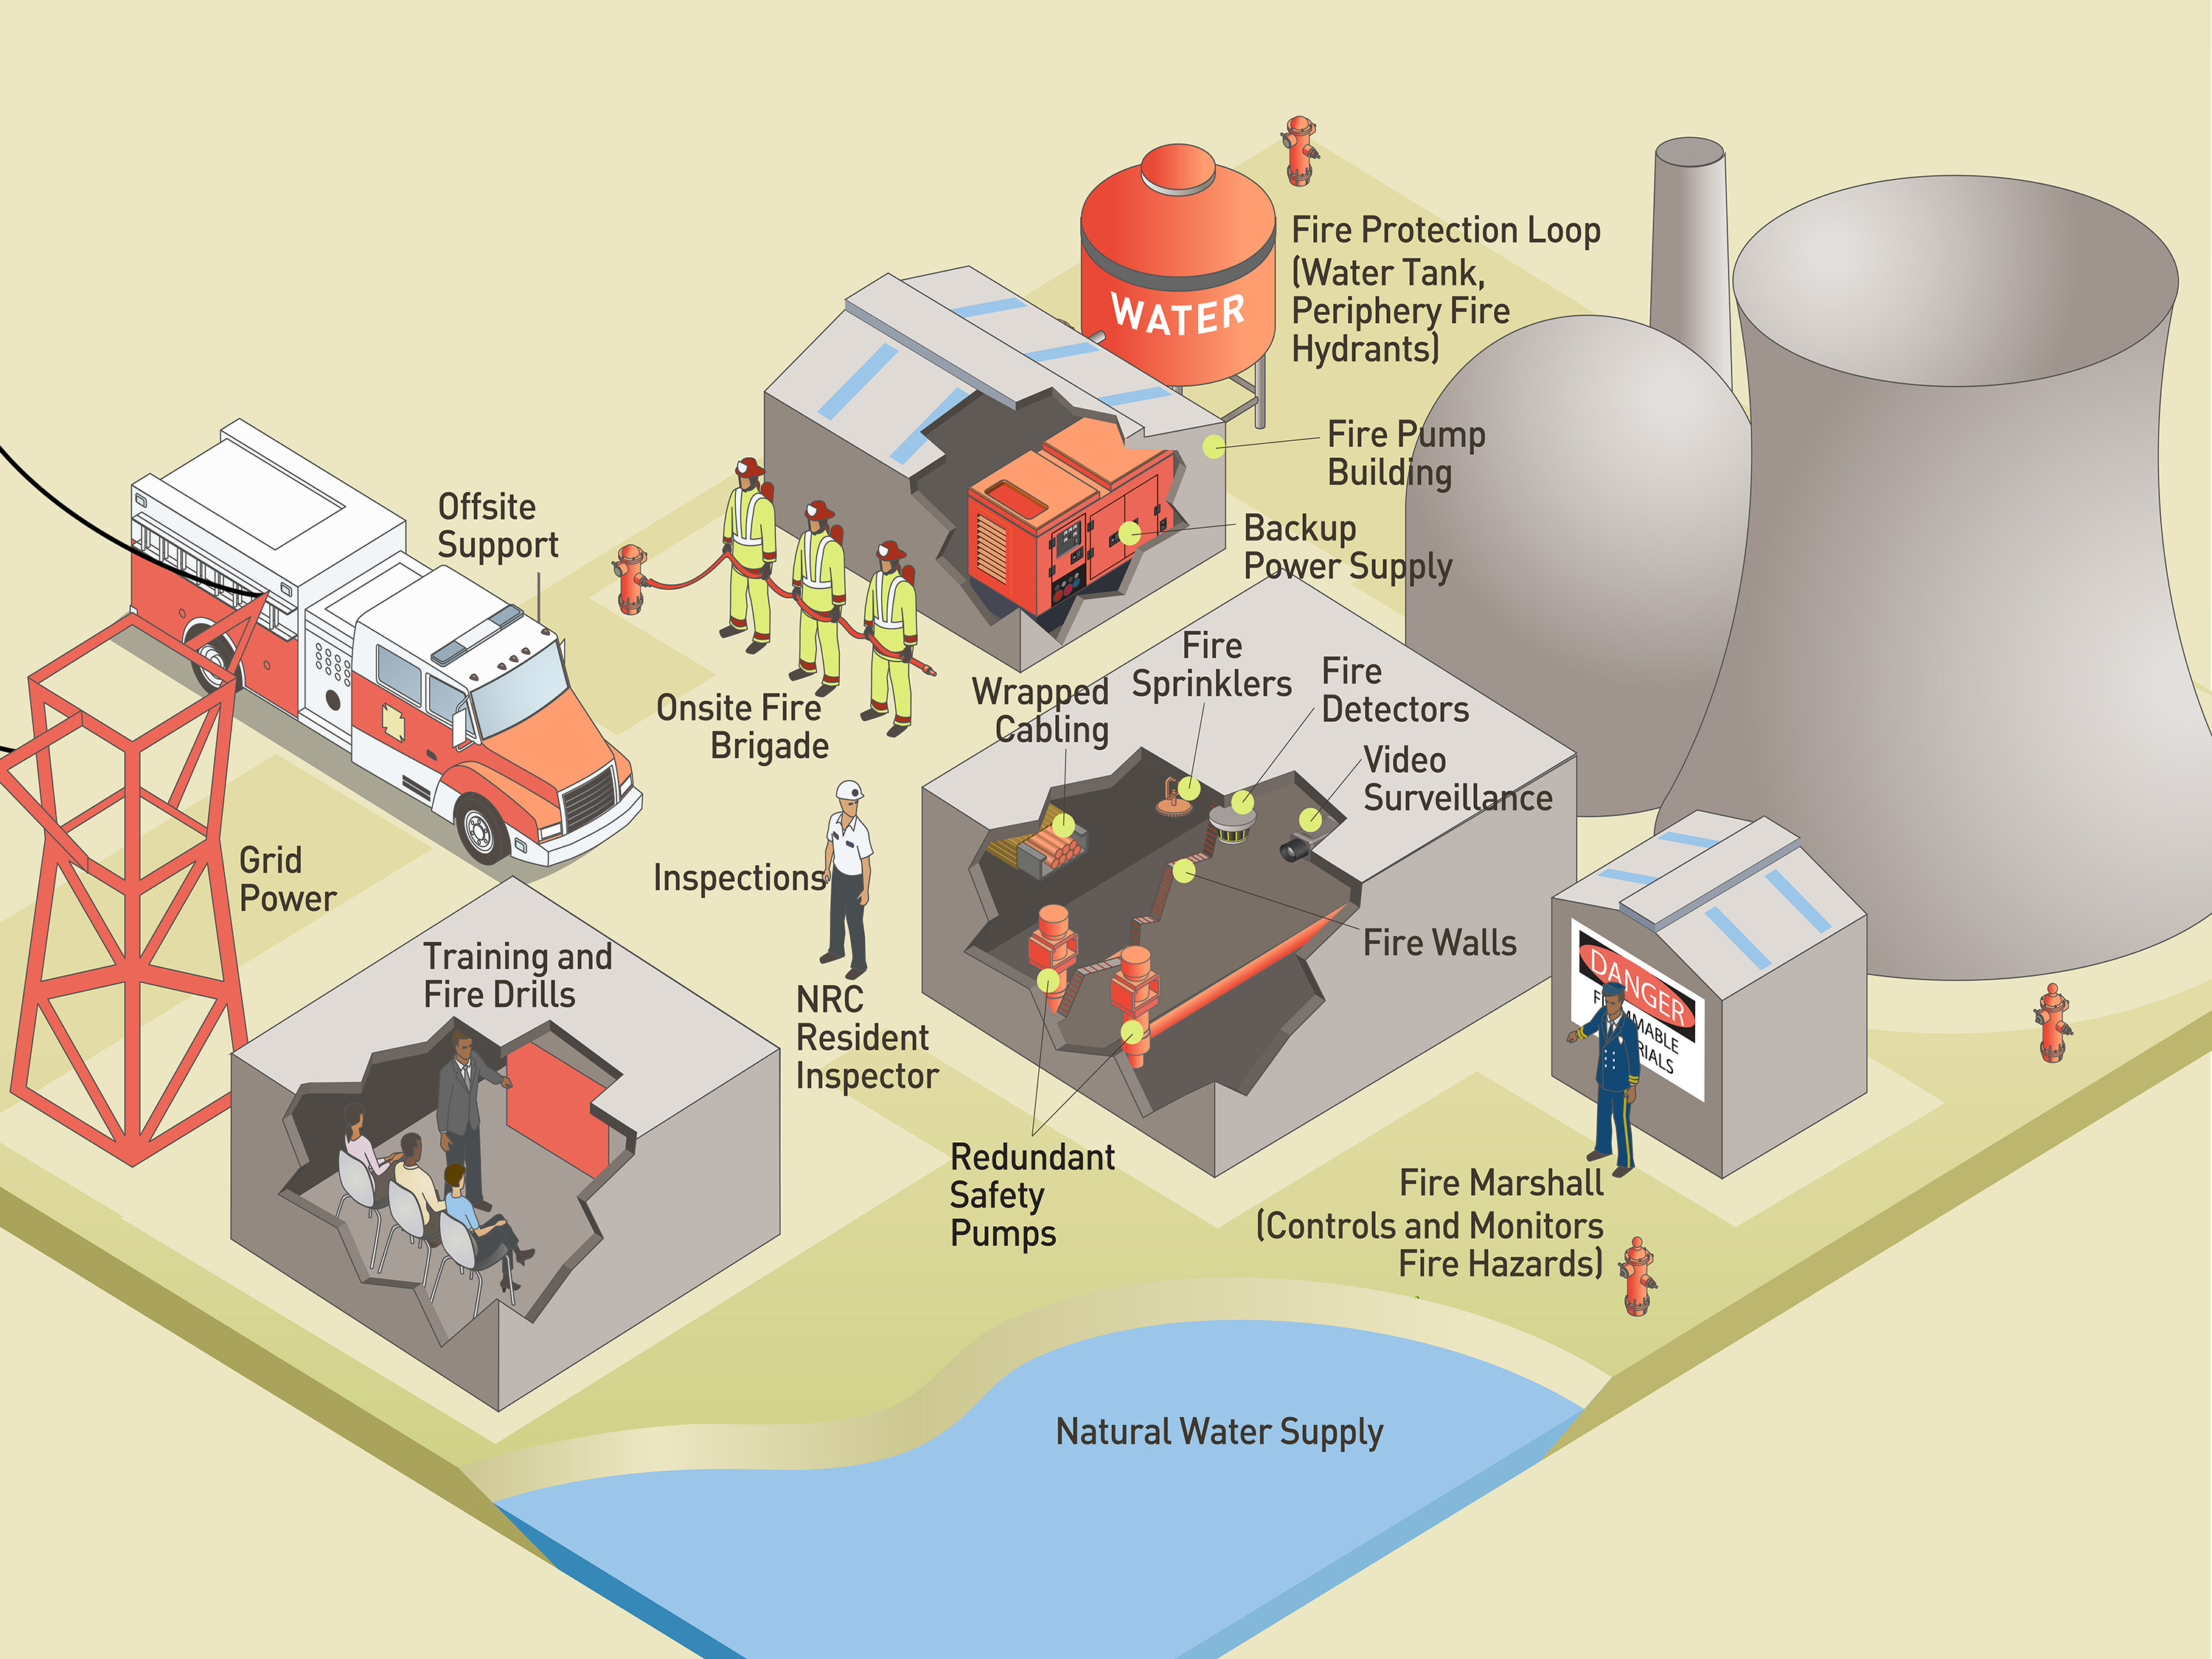 ... nuclear power plants. Fire Protection infographic_r13